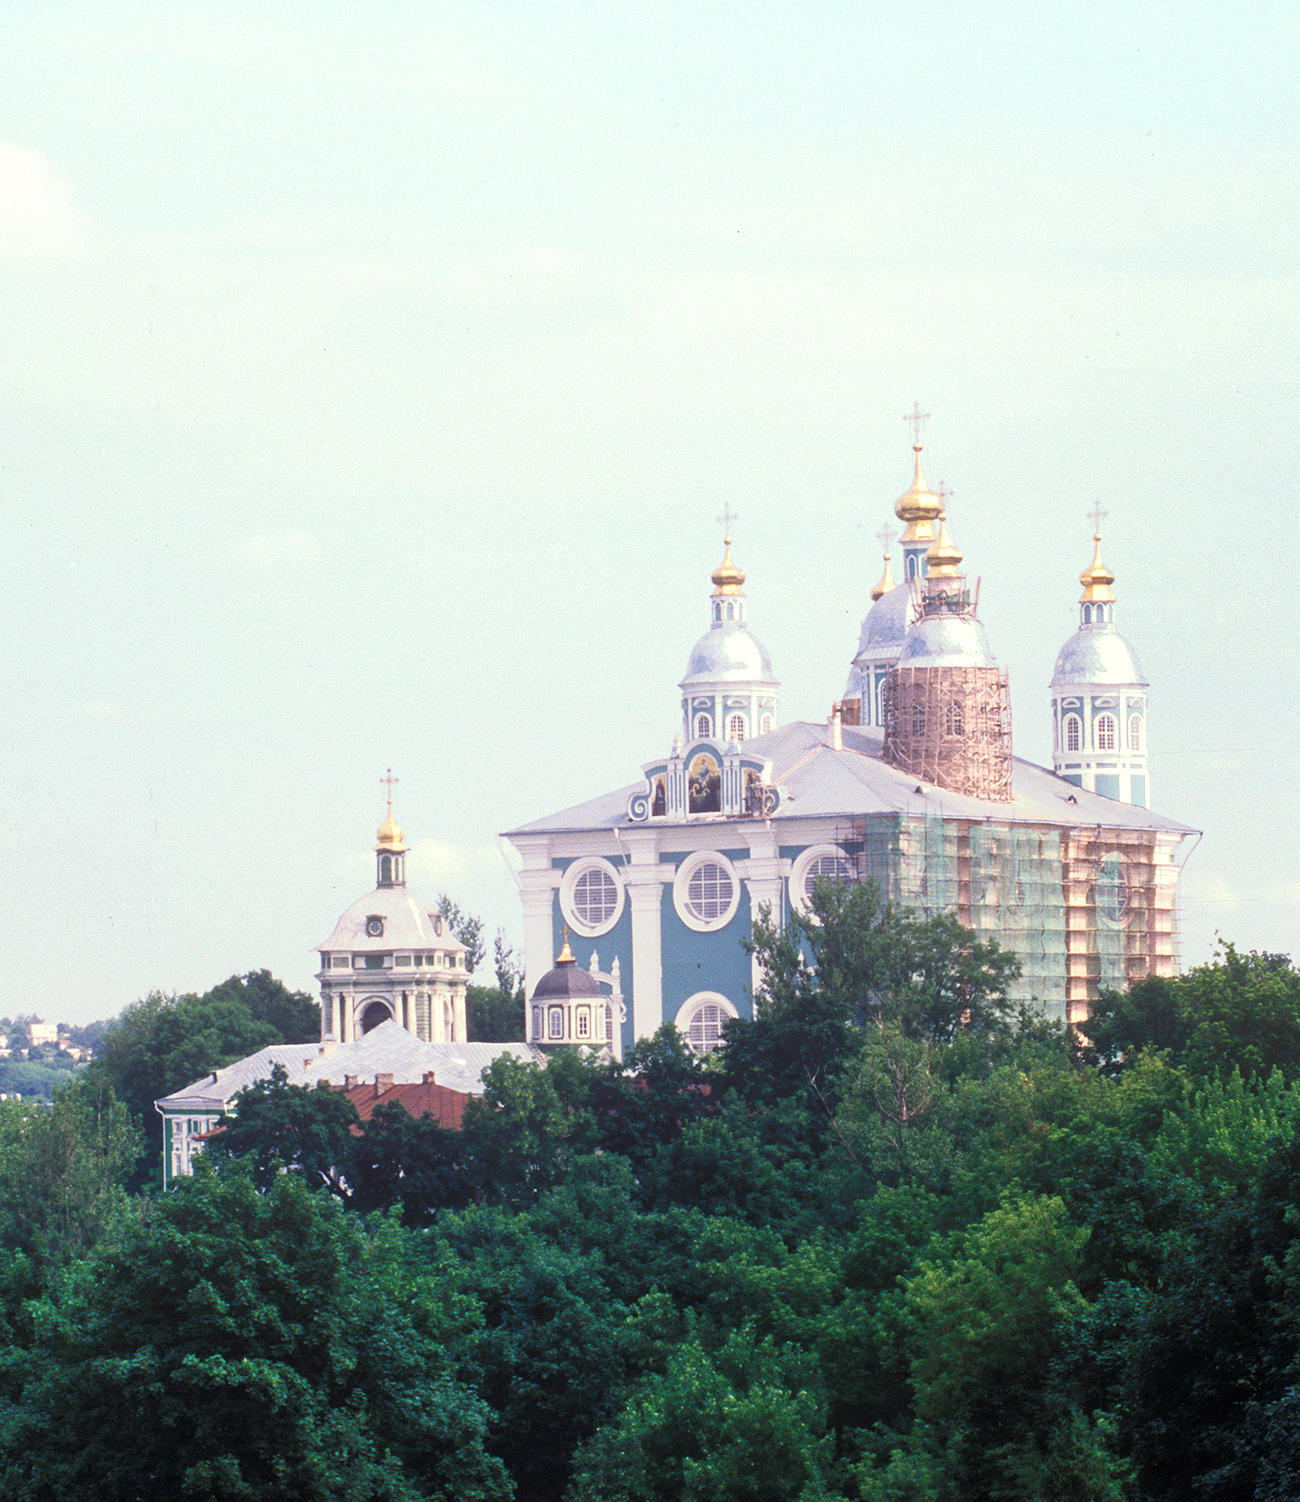 Dormition Cathedral, southwest view near Ascension Monastery. July 15, 2006. / Photo: William Brumfield